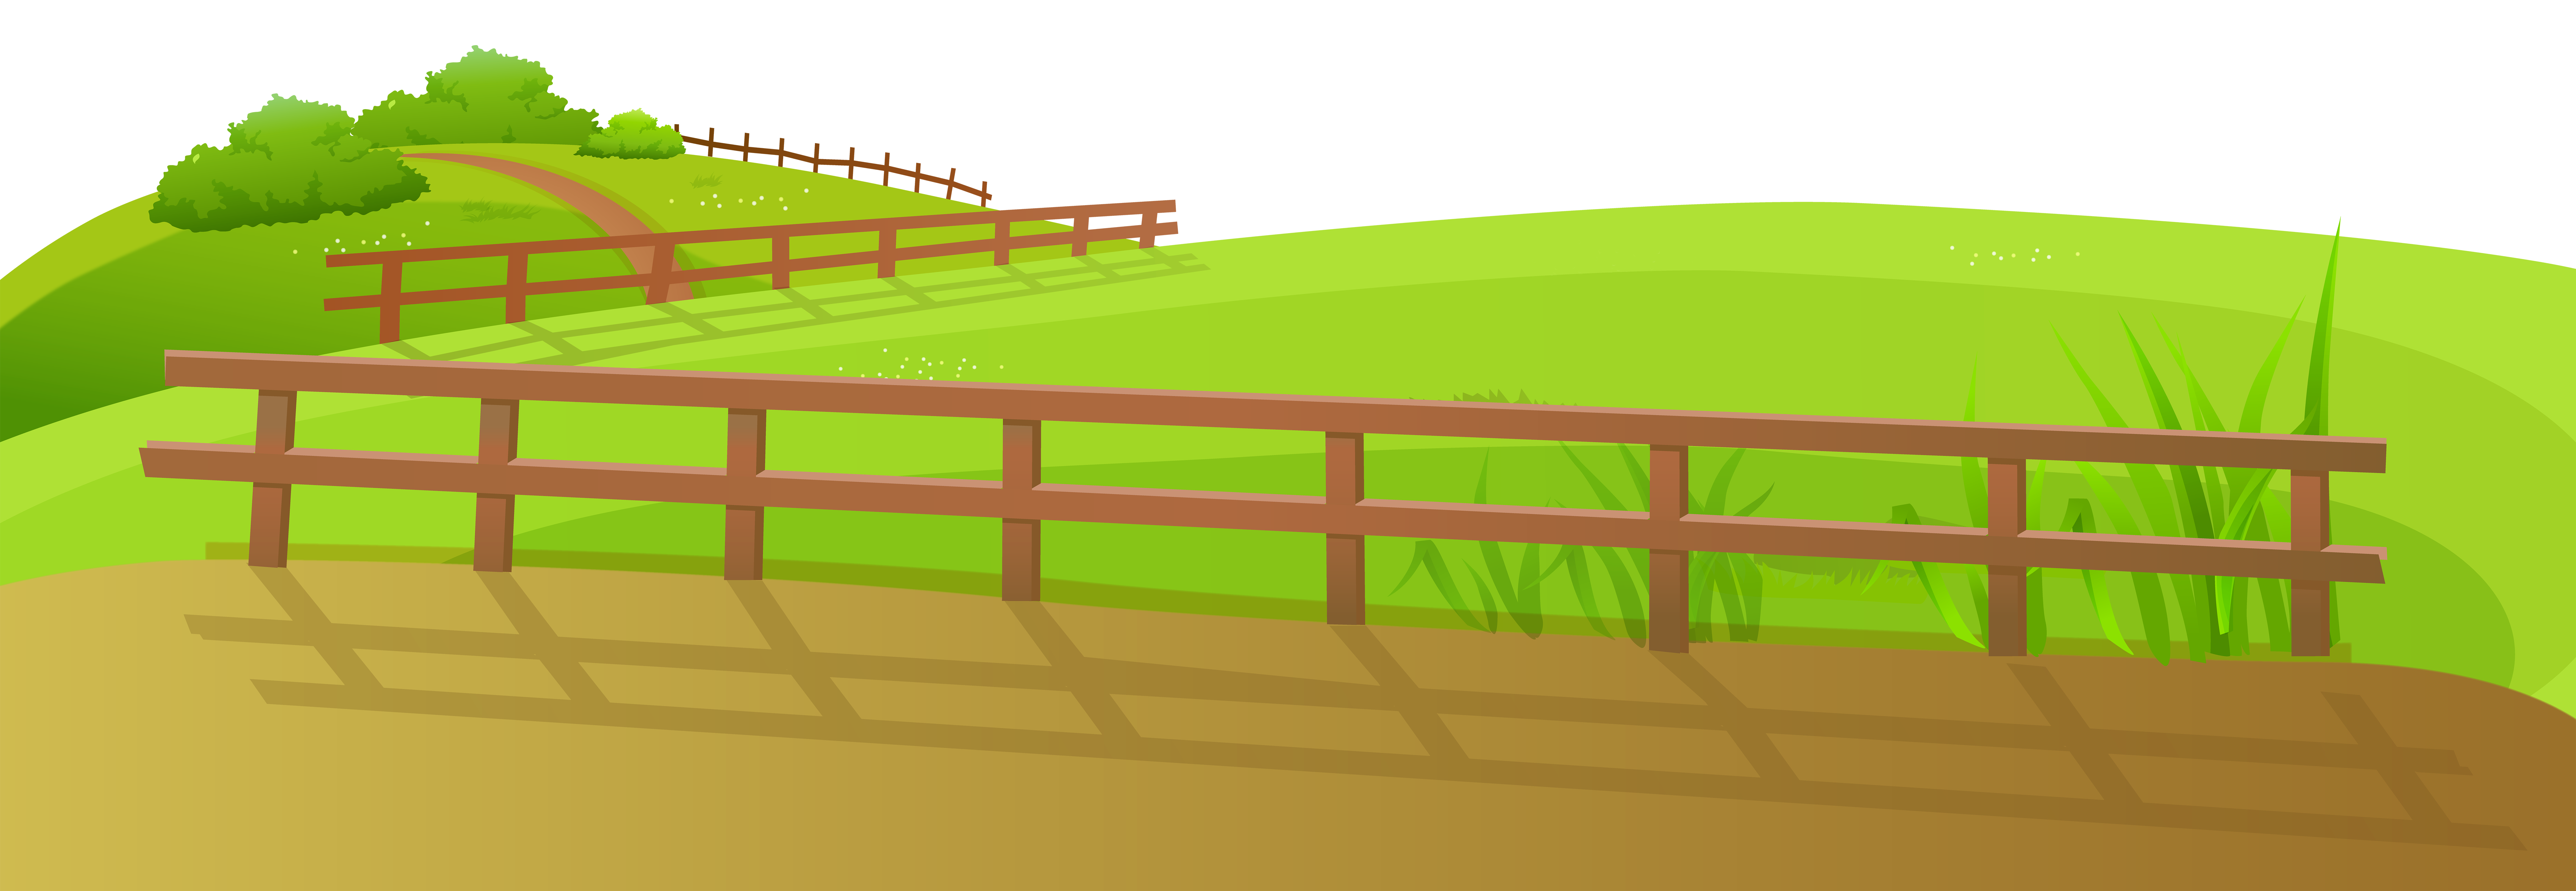 clipart freeuse download Barn clipart scenery. Grass ground with fence.